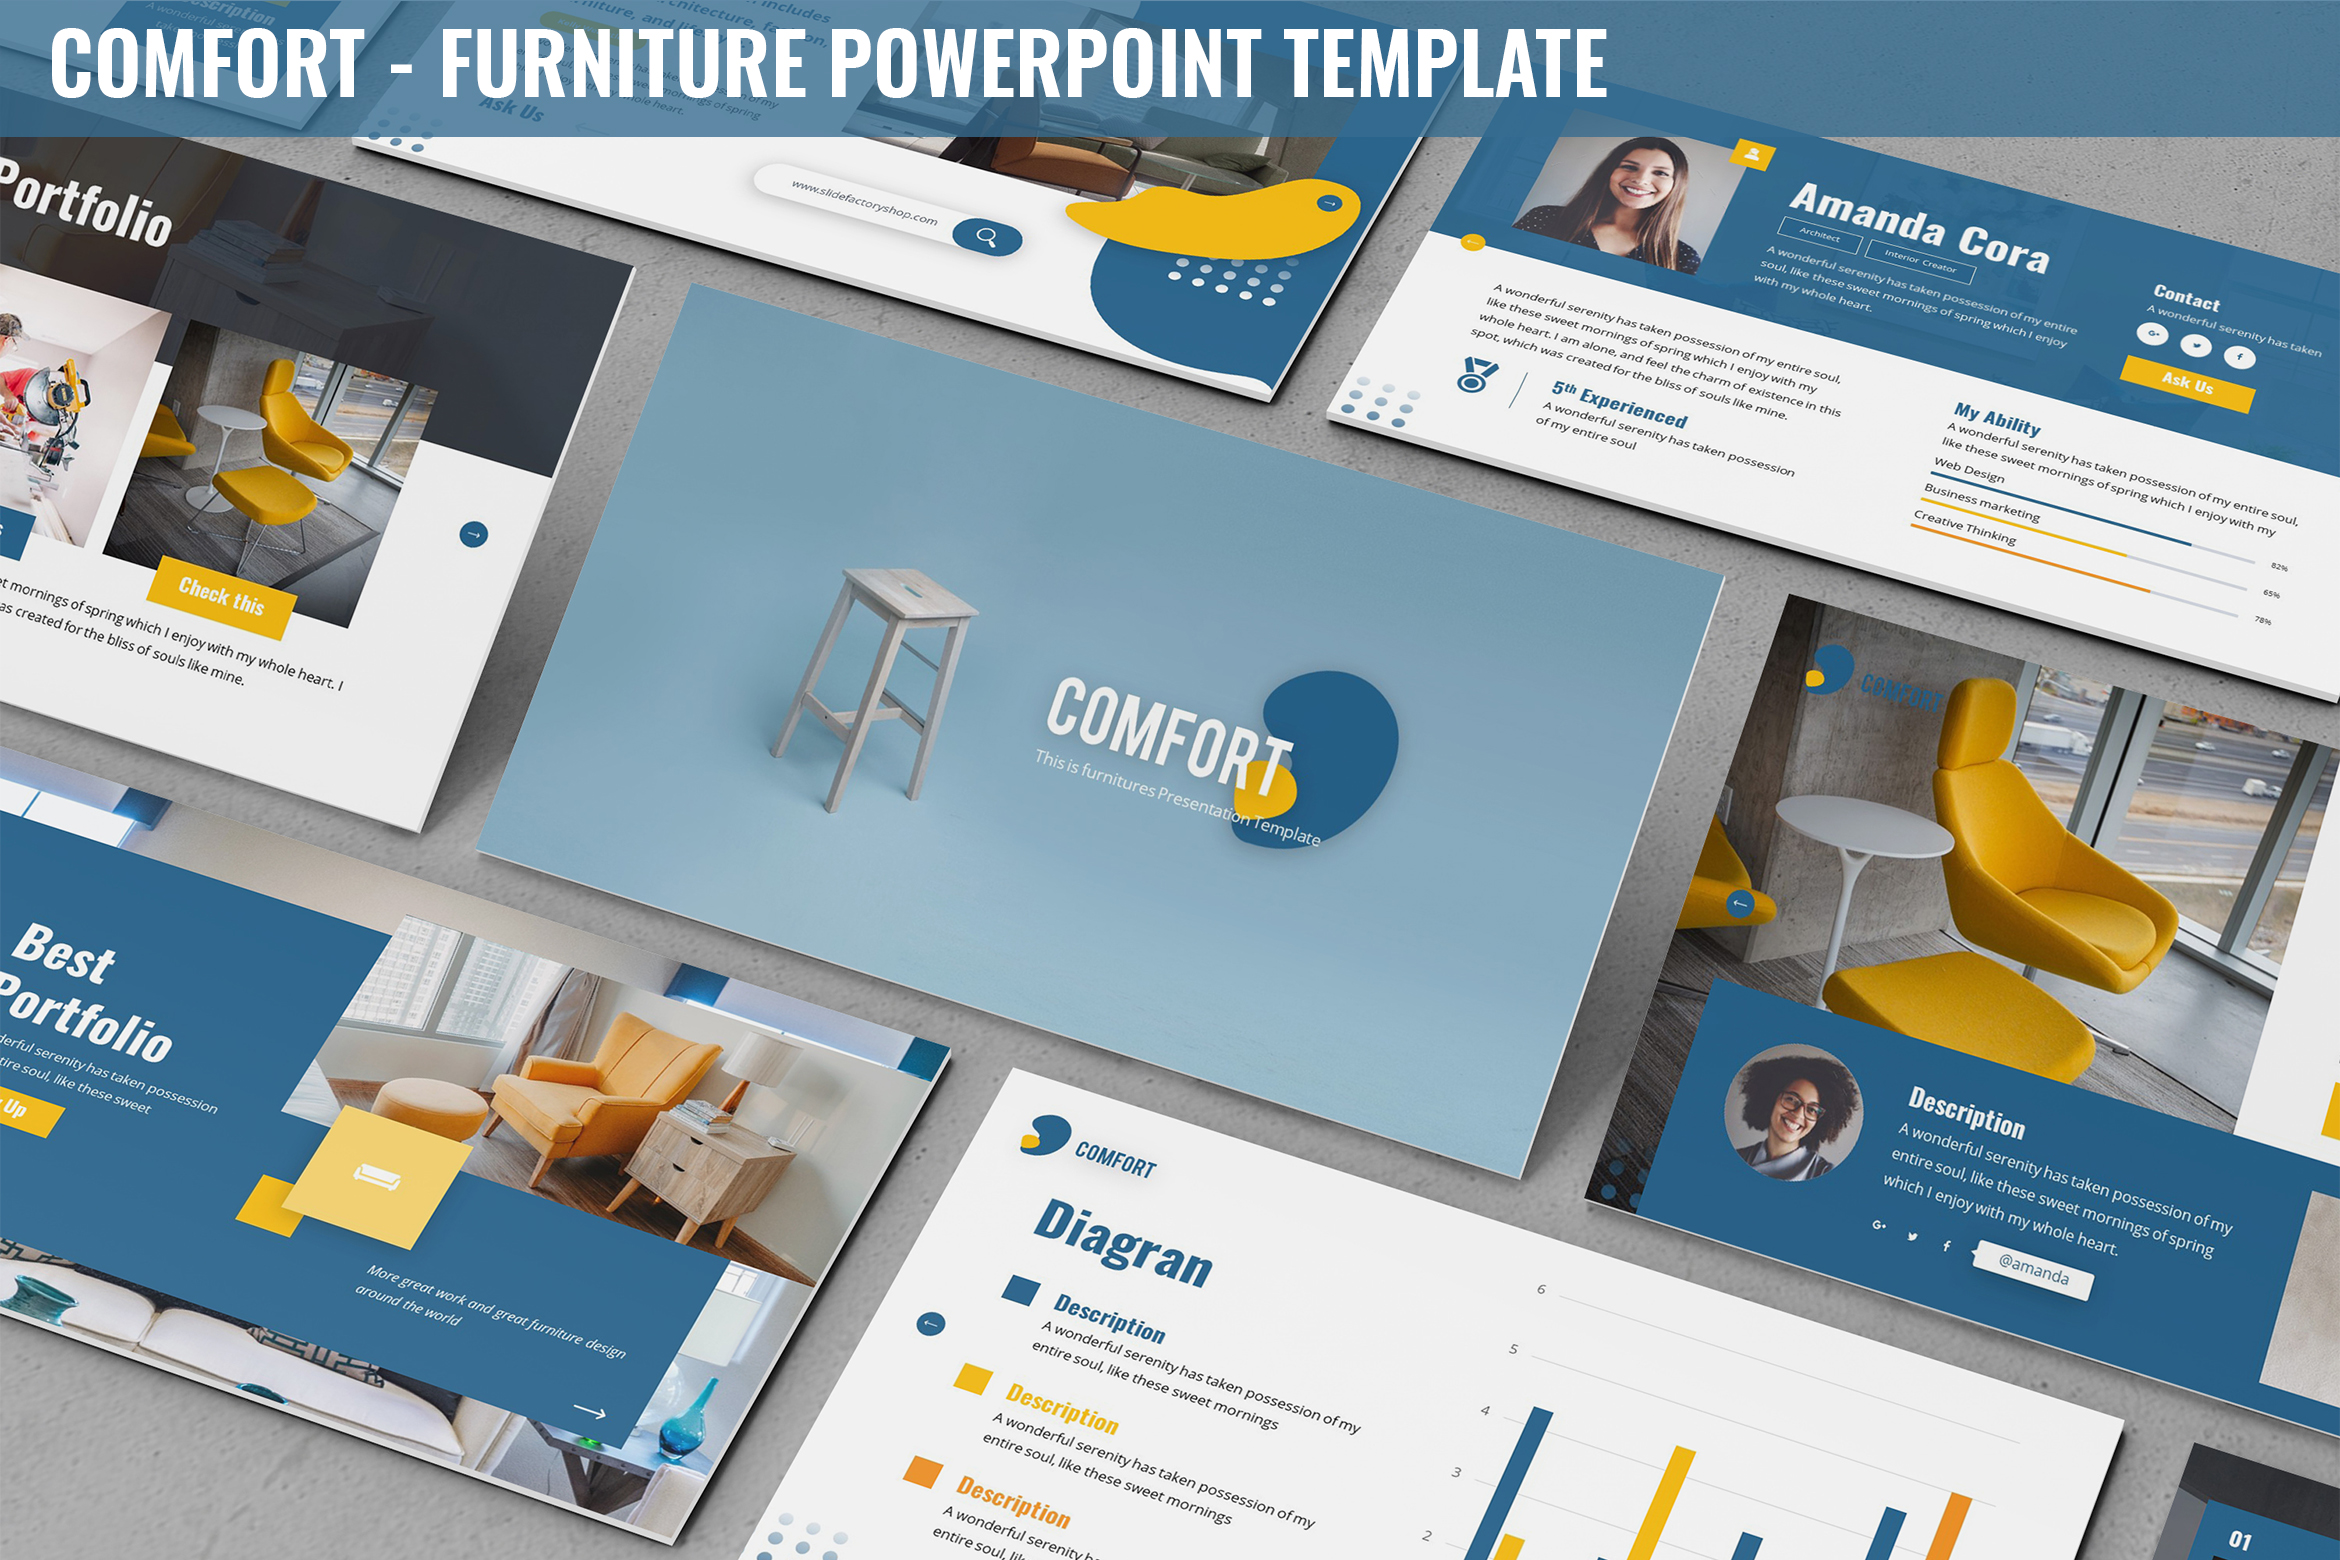 Comfort - Furniture Powerpoint Template example image 1